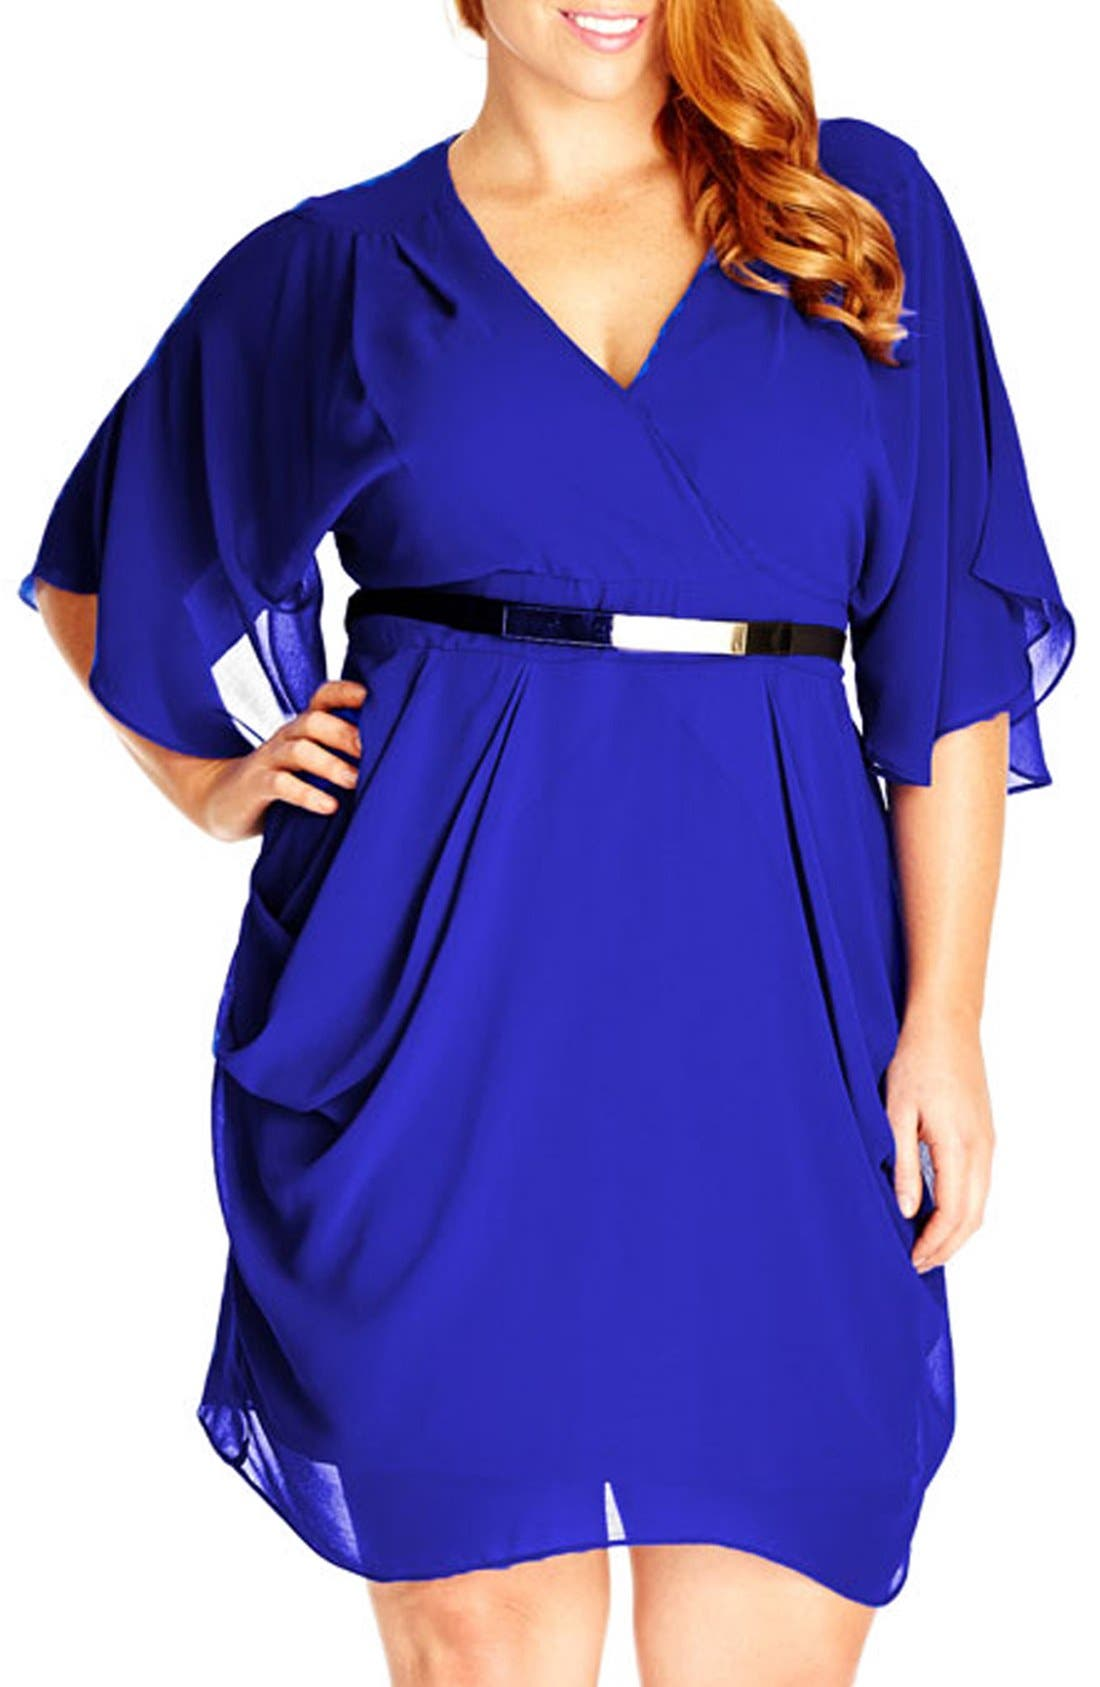 'Colour Wrap' Surplice Dress,                         Main,                         color, ULTRA BLUE